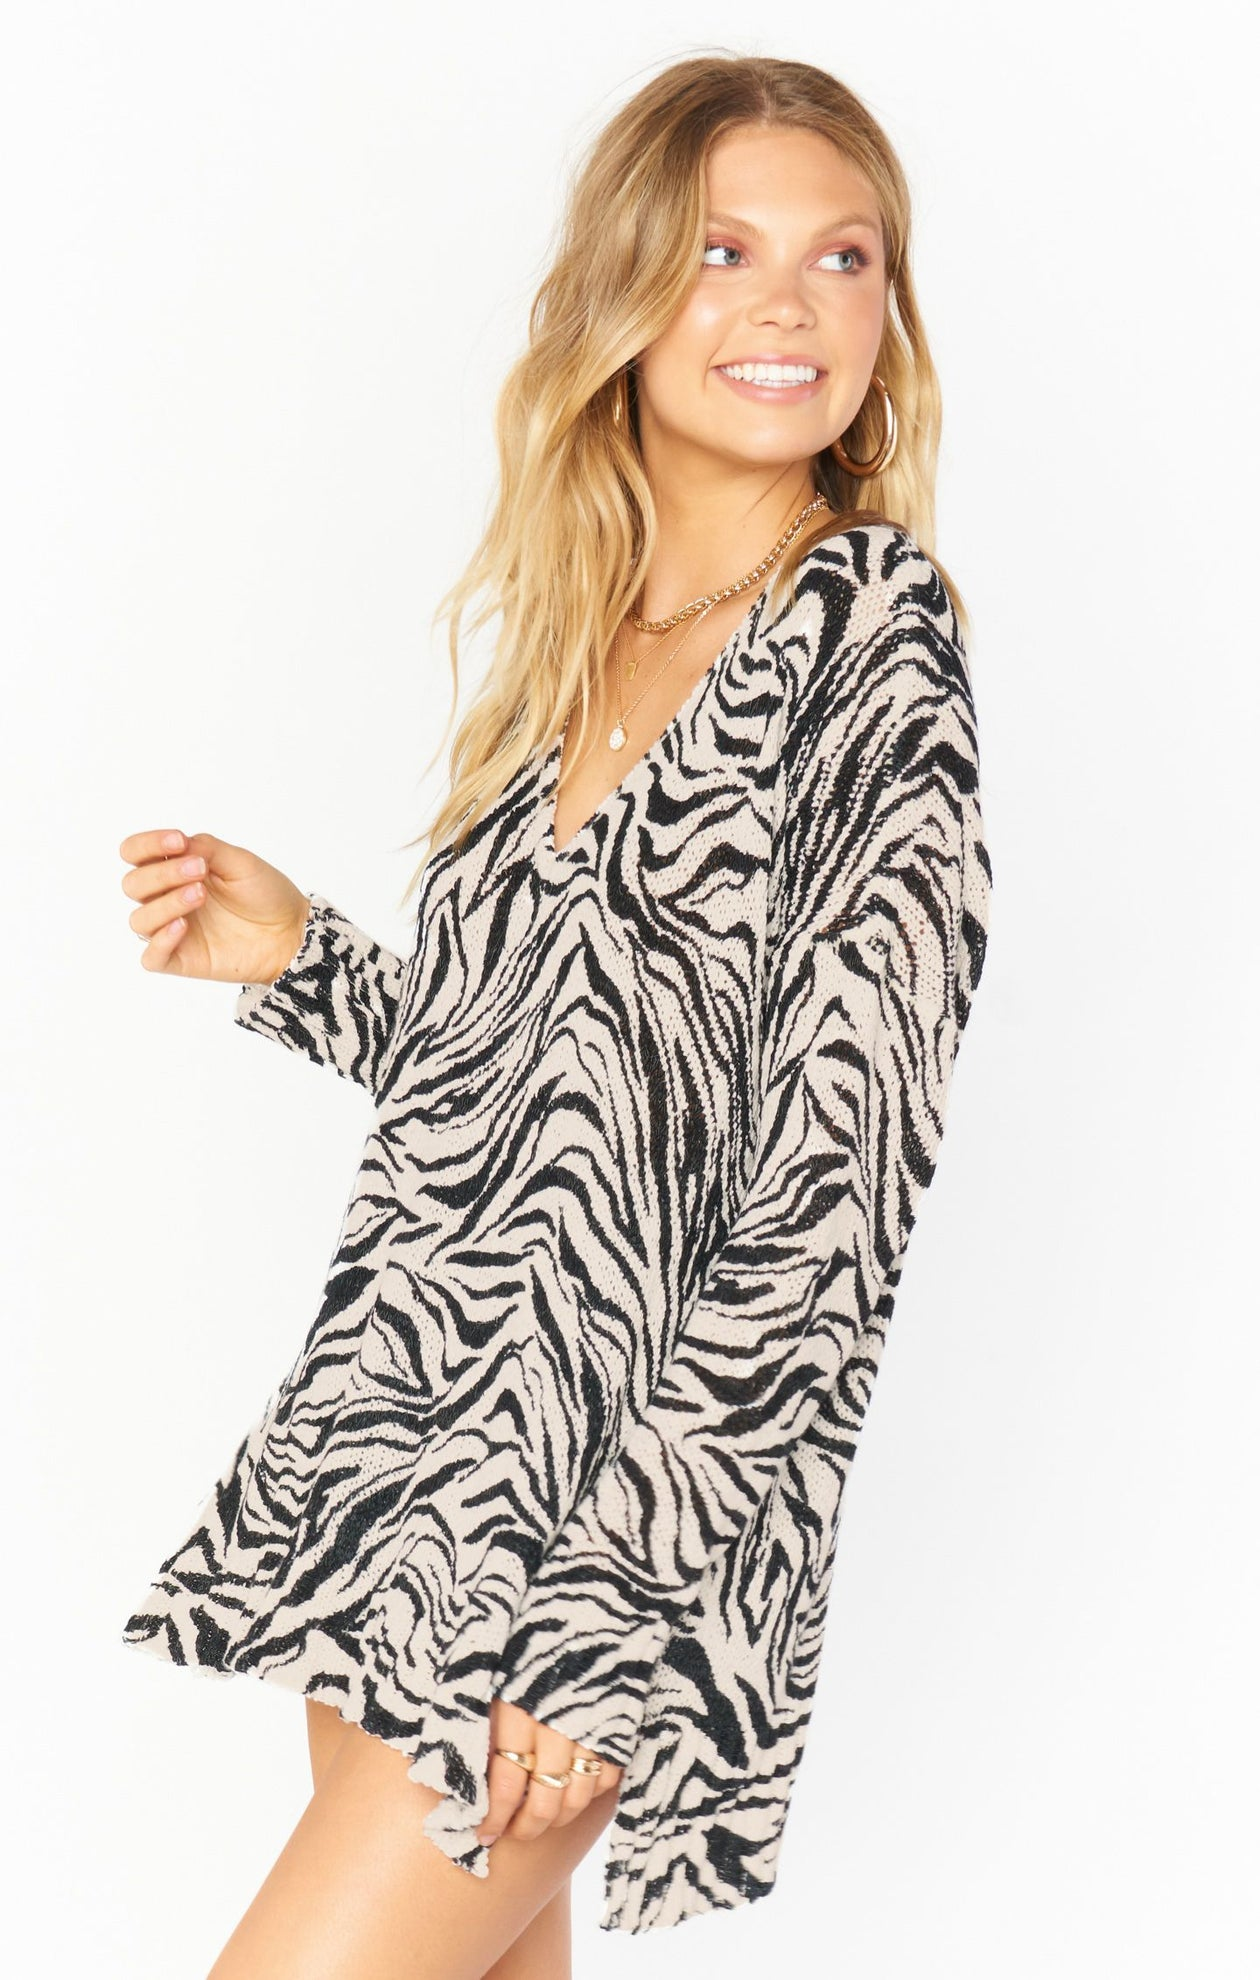 Hug Me Sweater - Coconut Zebra Knit | Show Me Your Mumu - Women's Sweaters